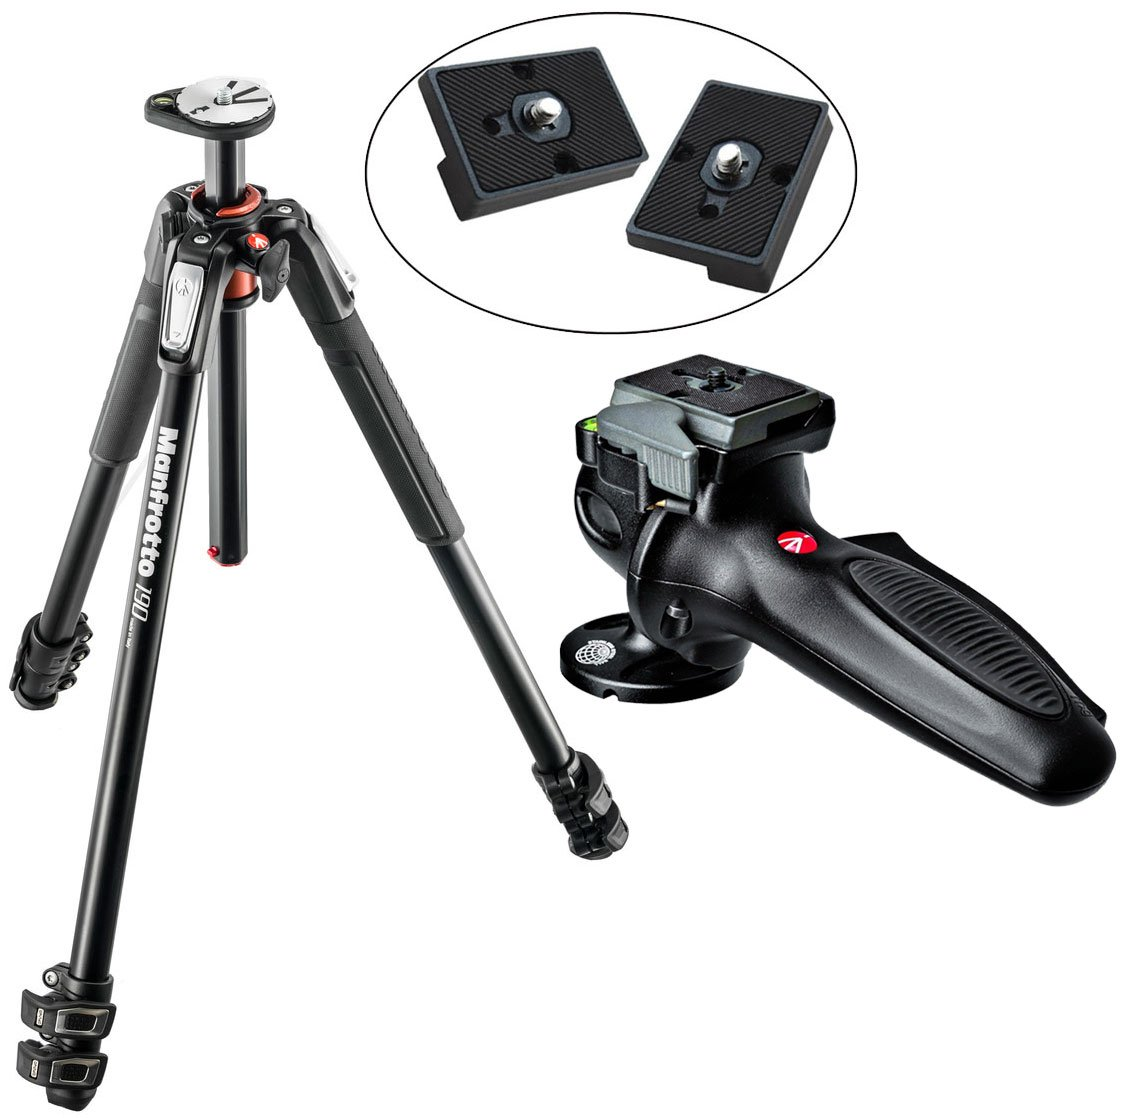 Manfrotto MT190XPRO3 3 Section Aluminum Tripod Kit W/ 327RC2 Light Grip Joystick Tripod Ball Head with Two Replacement Quick Release Plates for the RC2 Rapid Connect Adapter